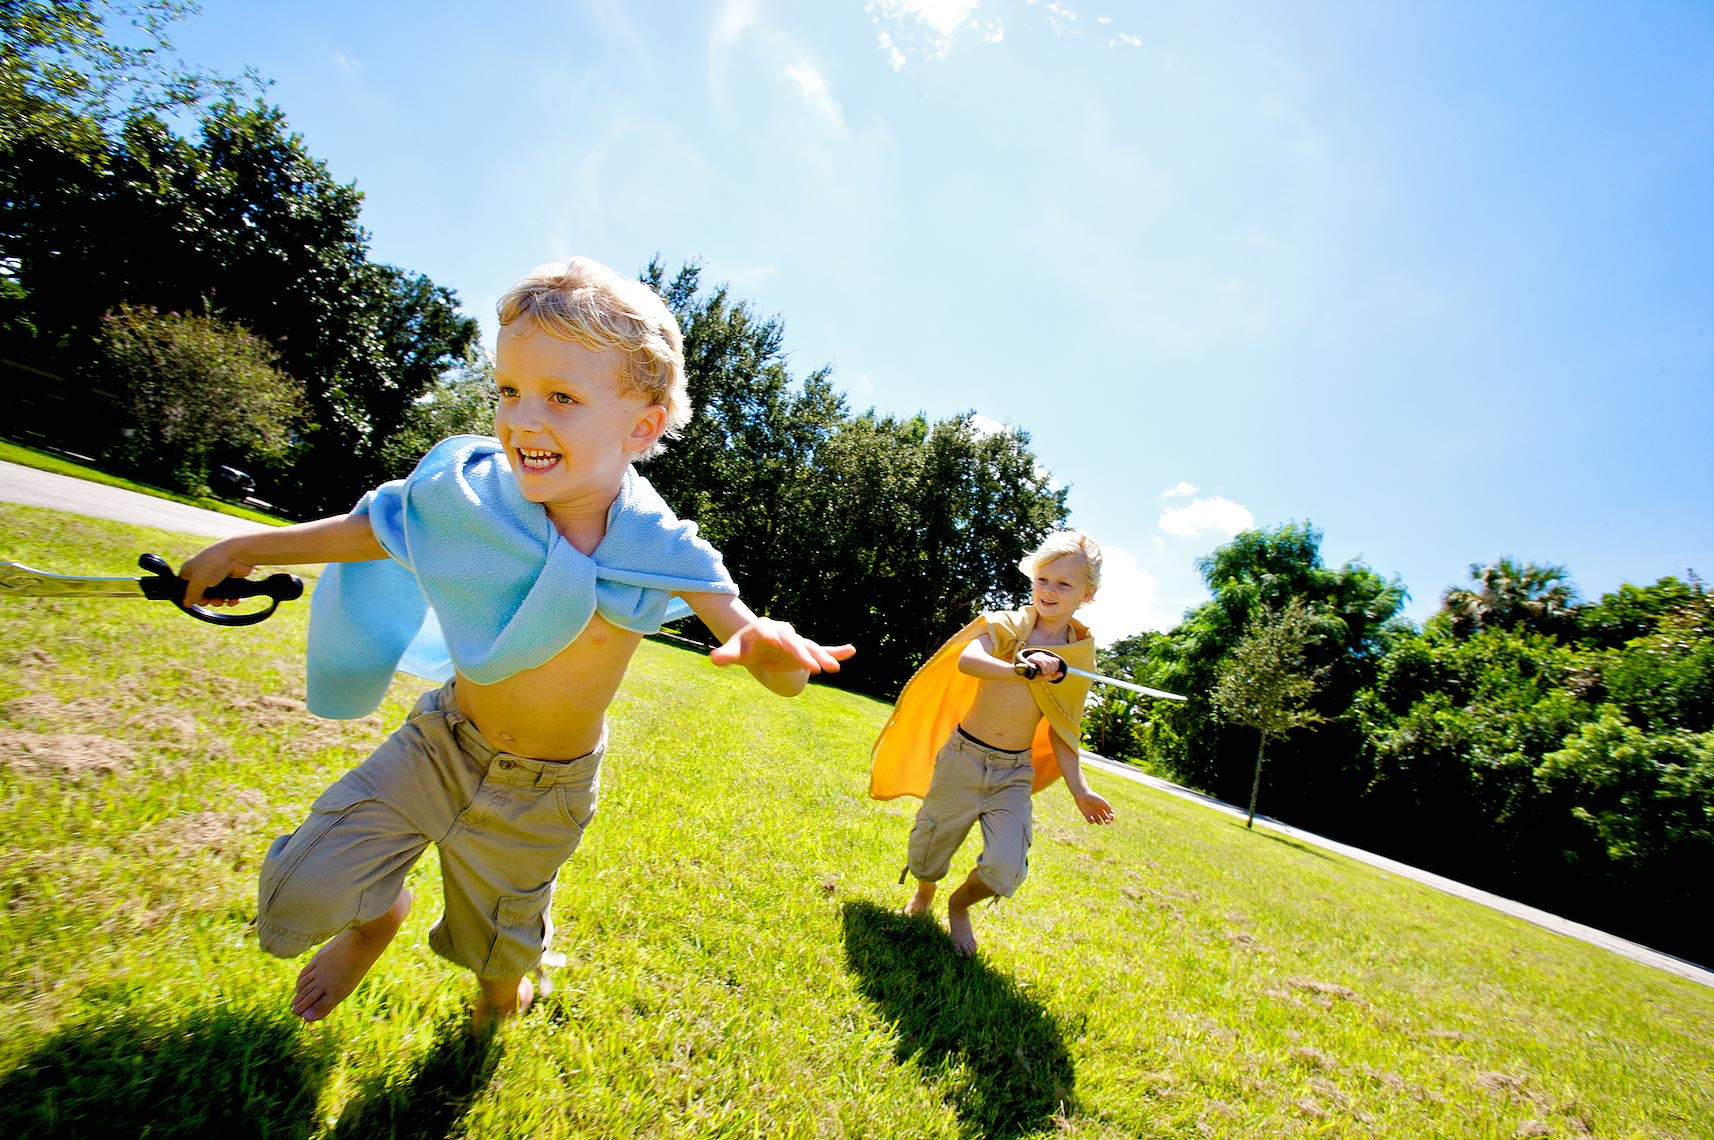 kids running with blanket capes_Robert-Holland.jpg